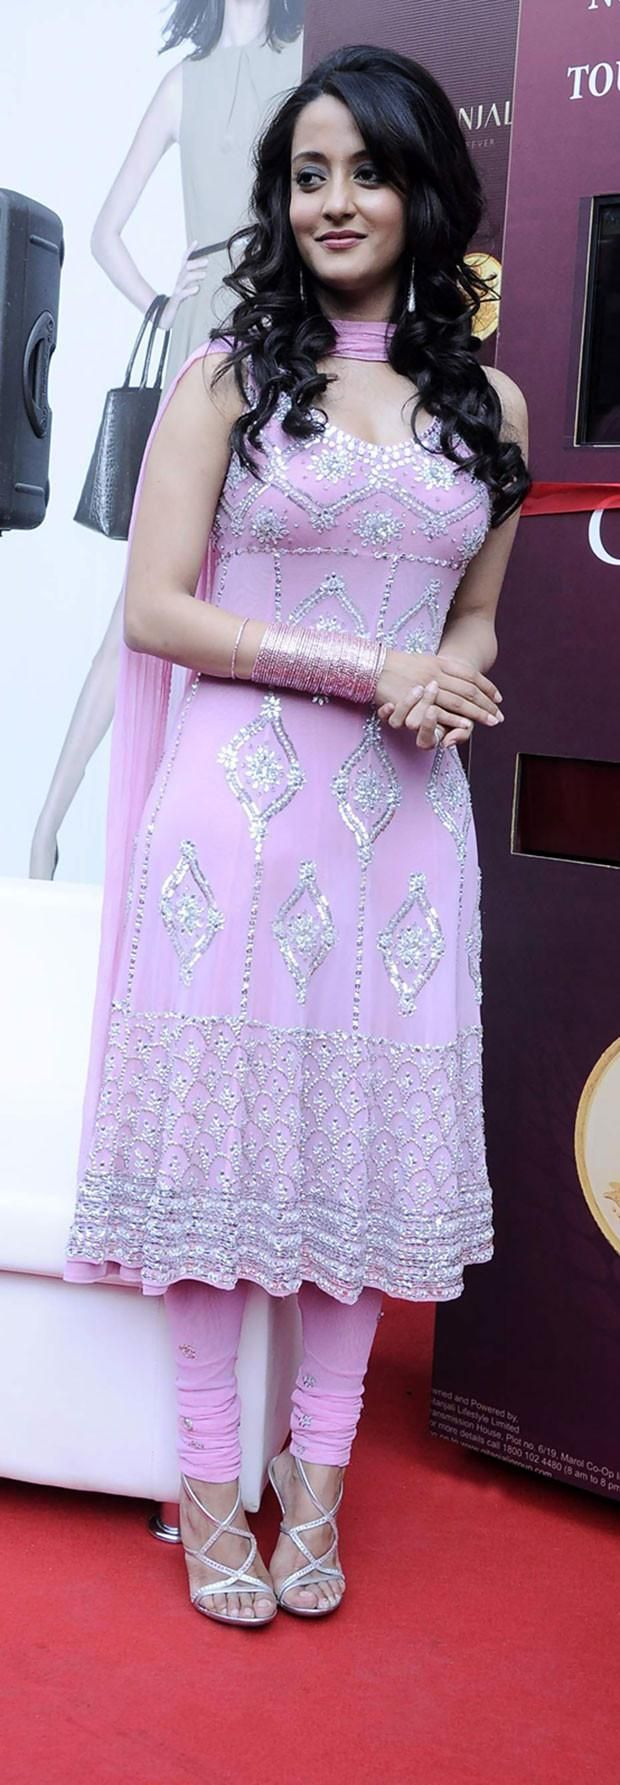 Raima Sen in Designer Bollywood Replika Suit With Embroidery in Pink